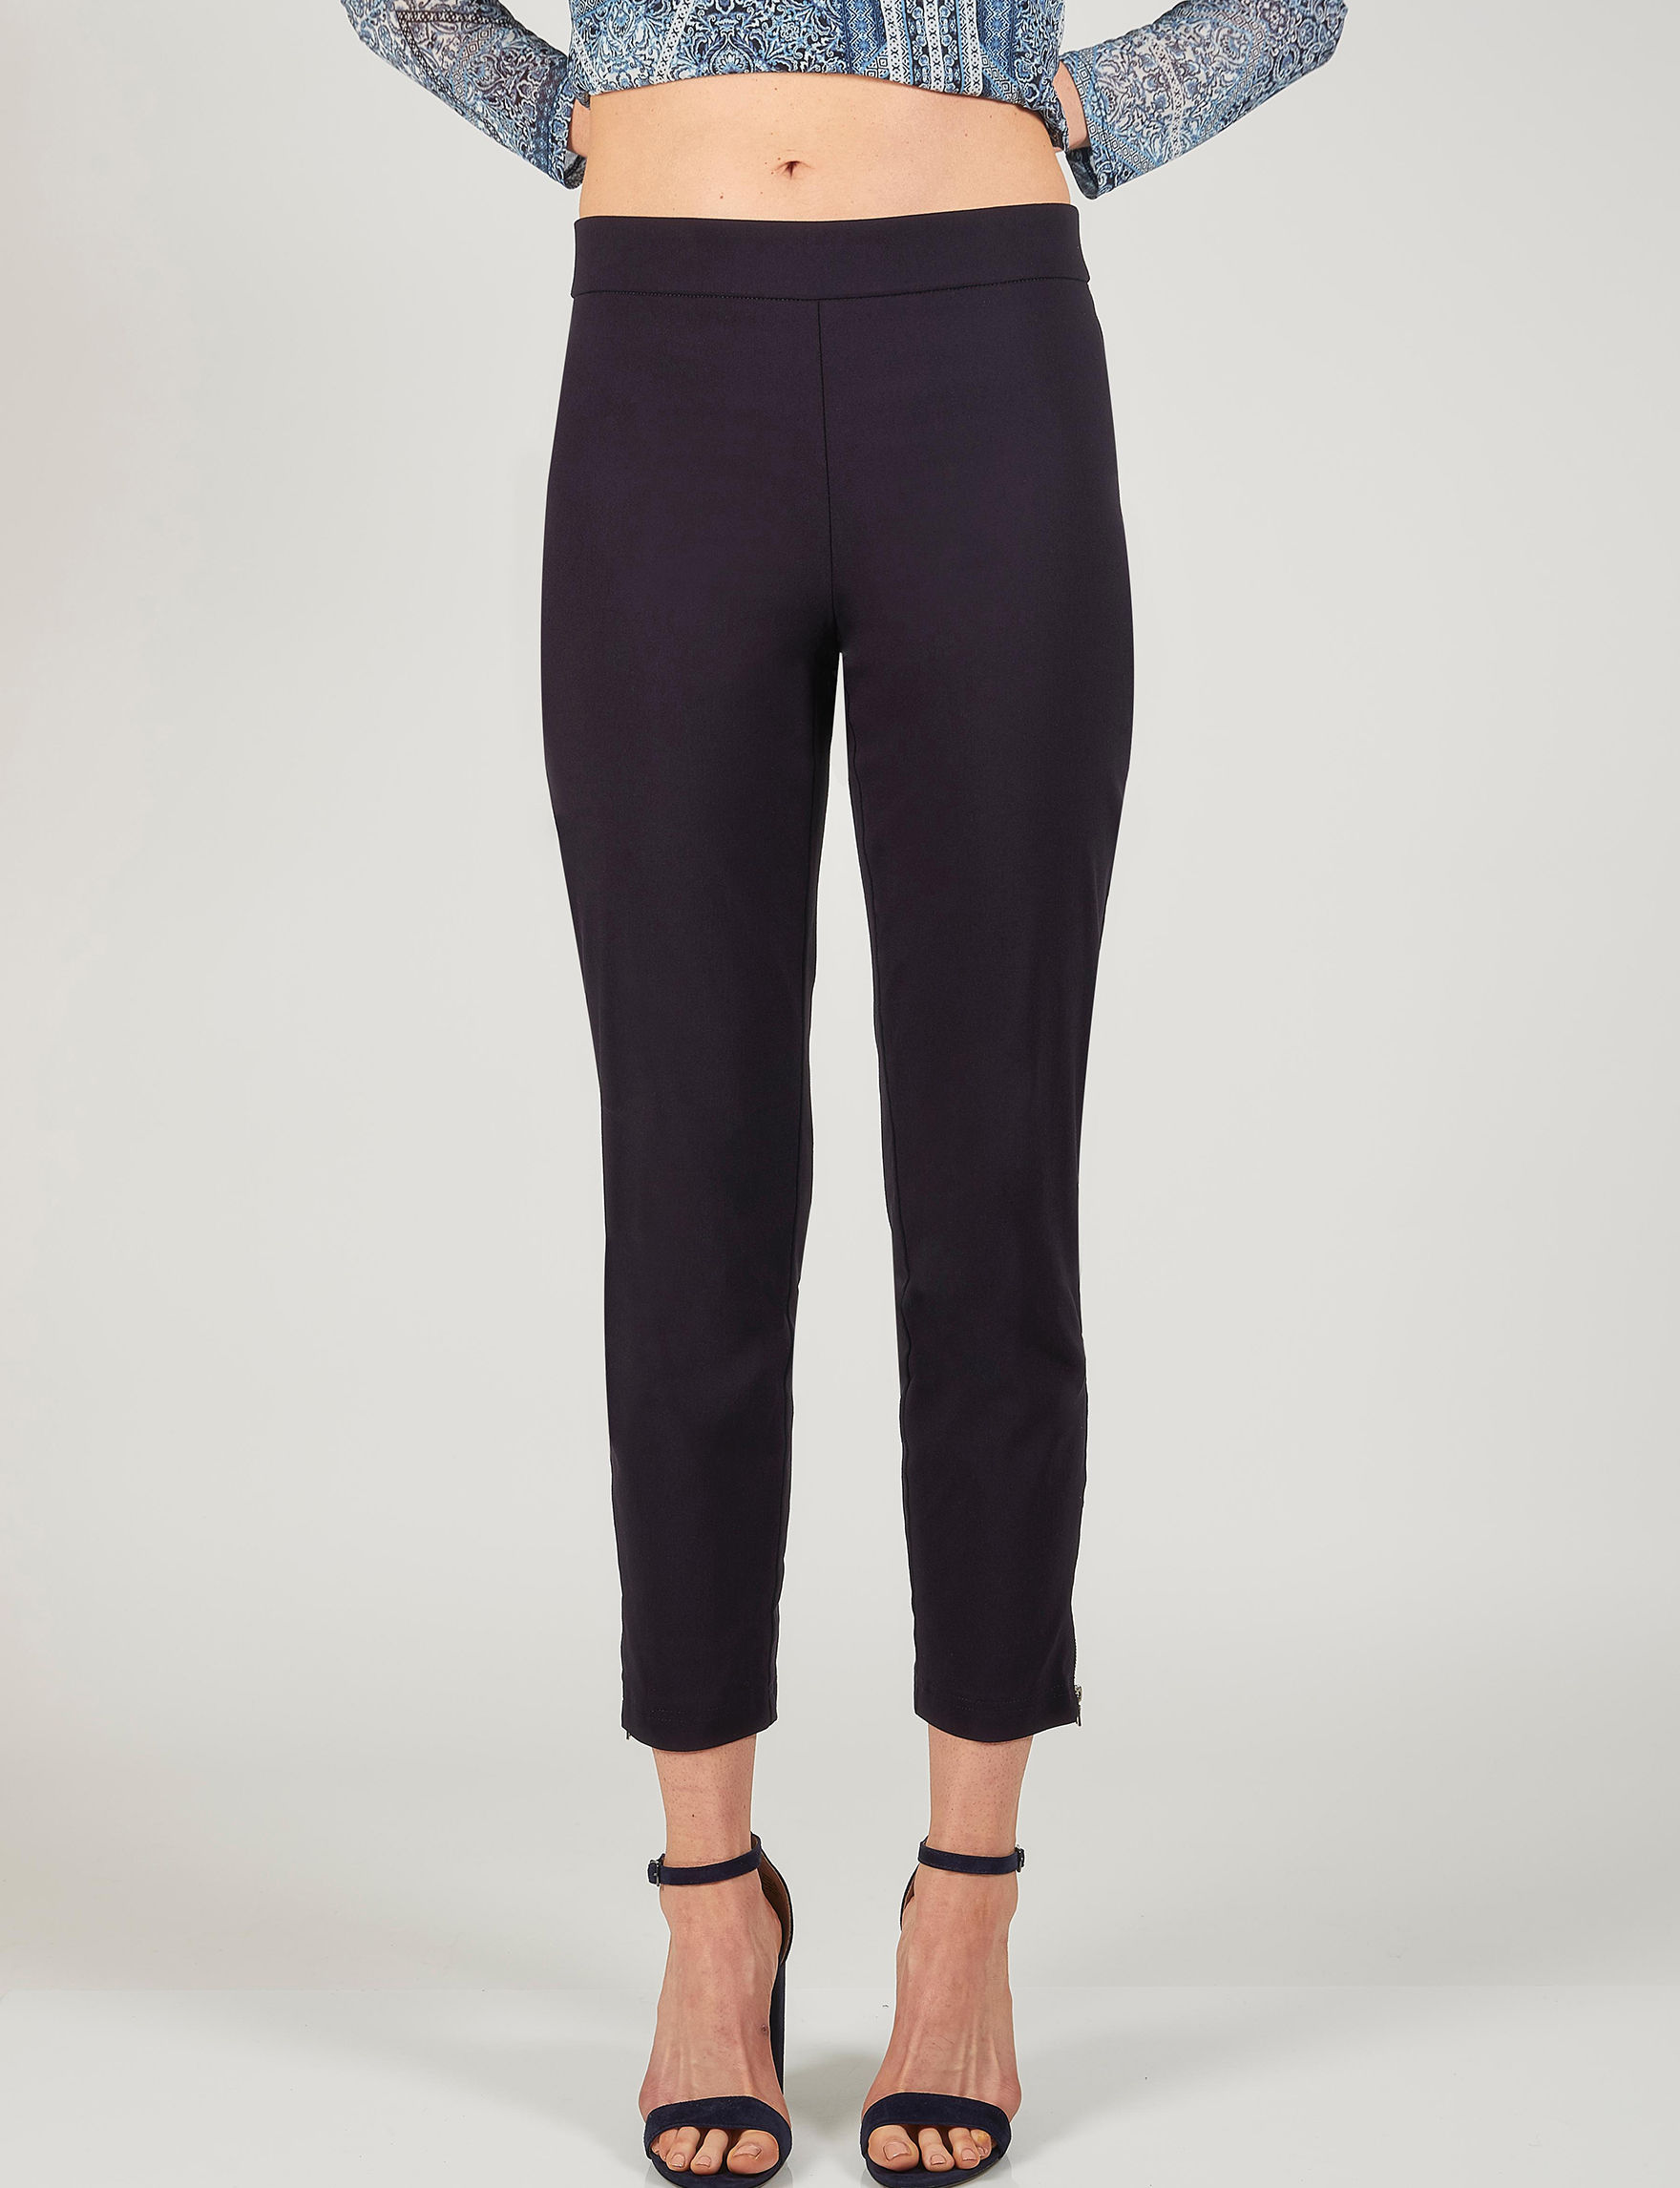 Skyes The Limit Navy Capris & Crops Soft Pants